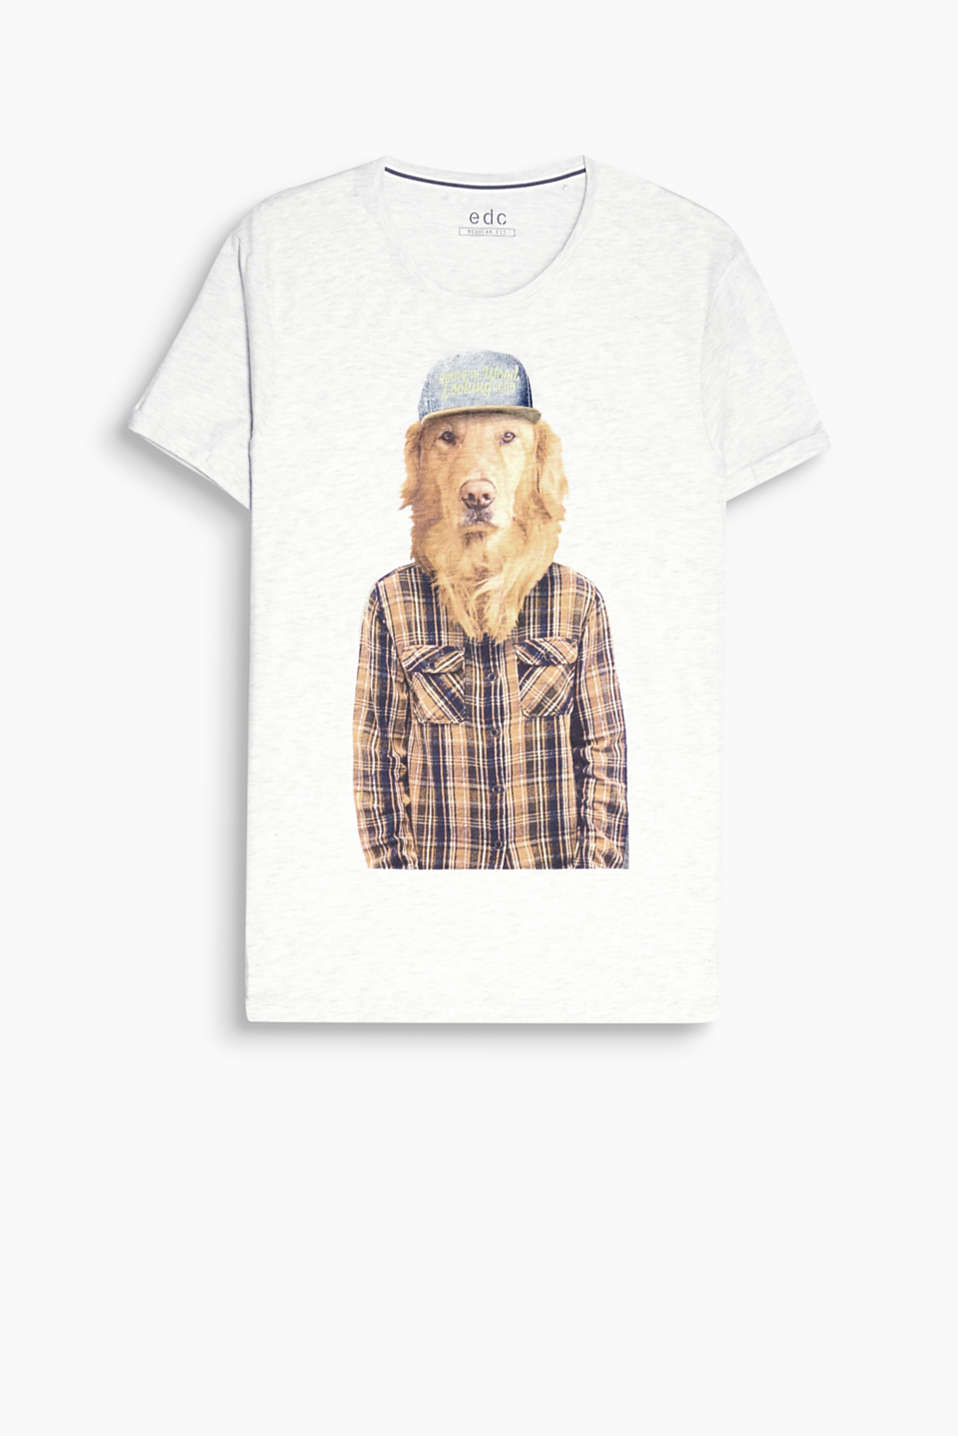 Cool Dog! The stylish photo print makes this T-shirt extremely eye-catching.